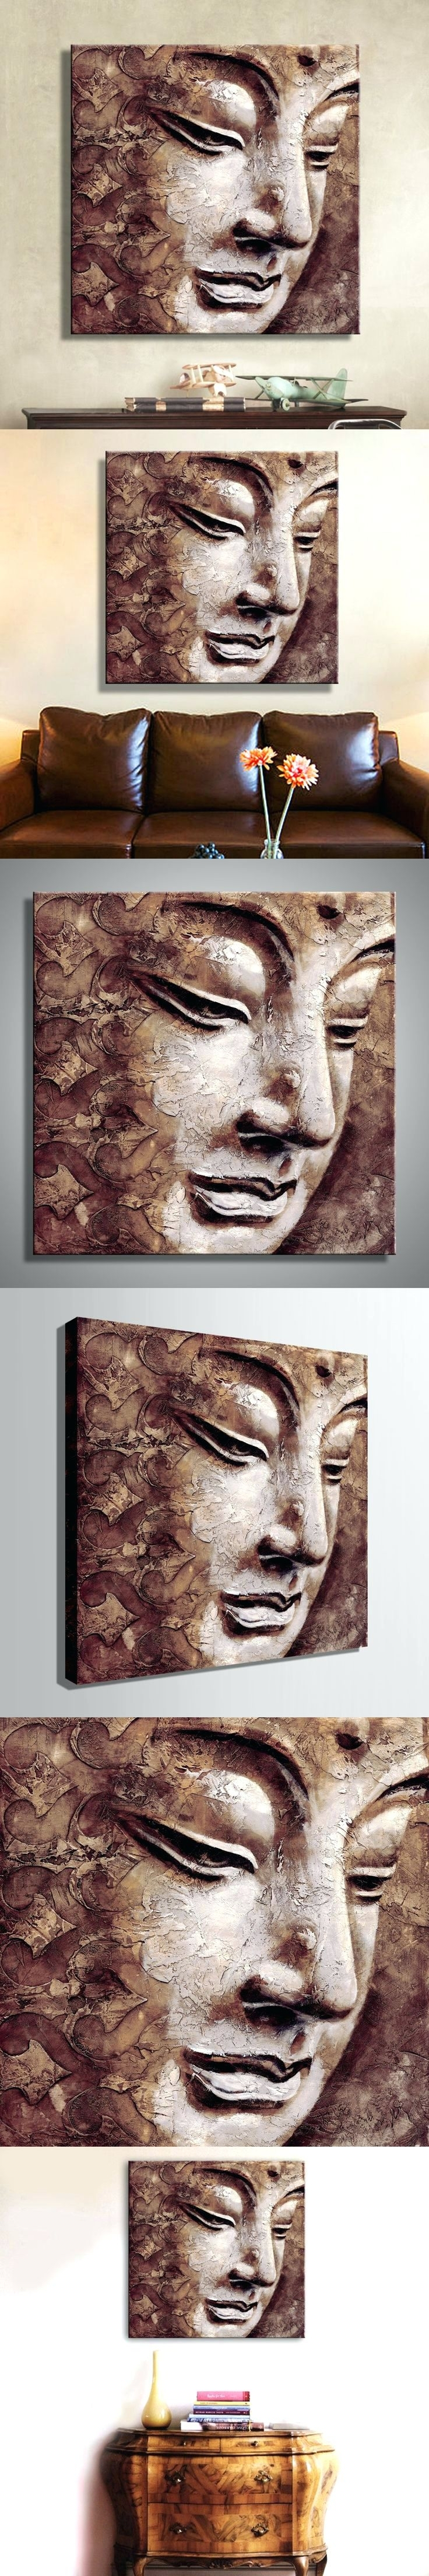 Wall Arts ~ Large Buddha Face Wall Art Large Buddha Wall Art Large Throughout Most Popular Abstract Buddha Wall Art (View 18 of 20)